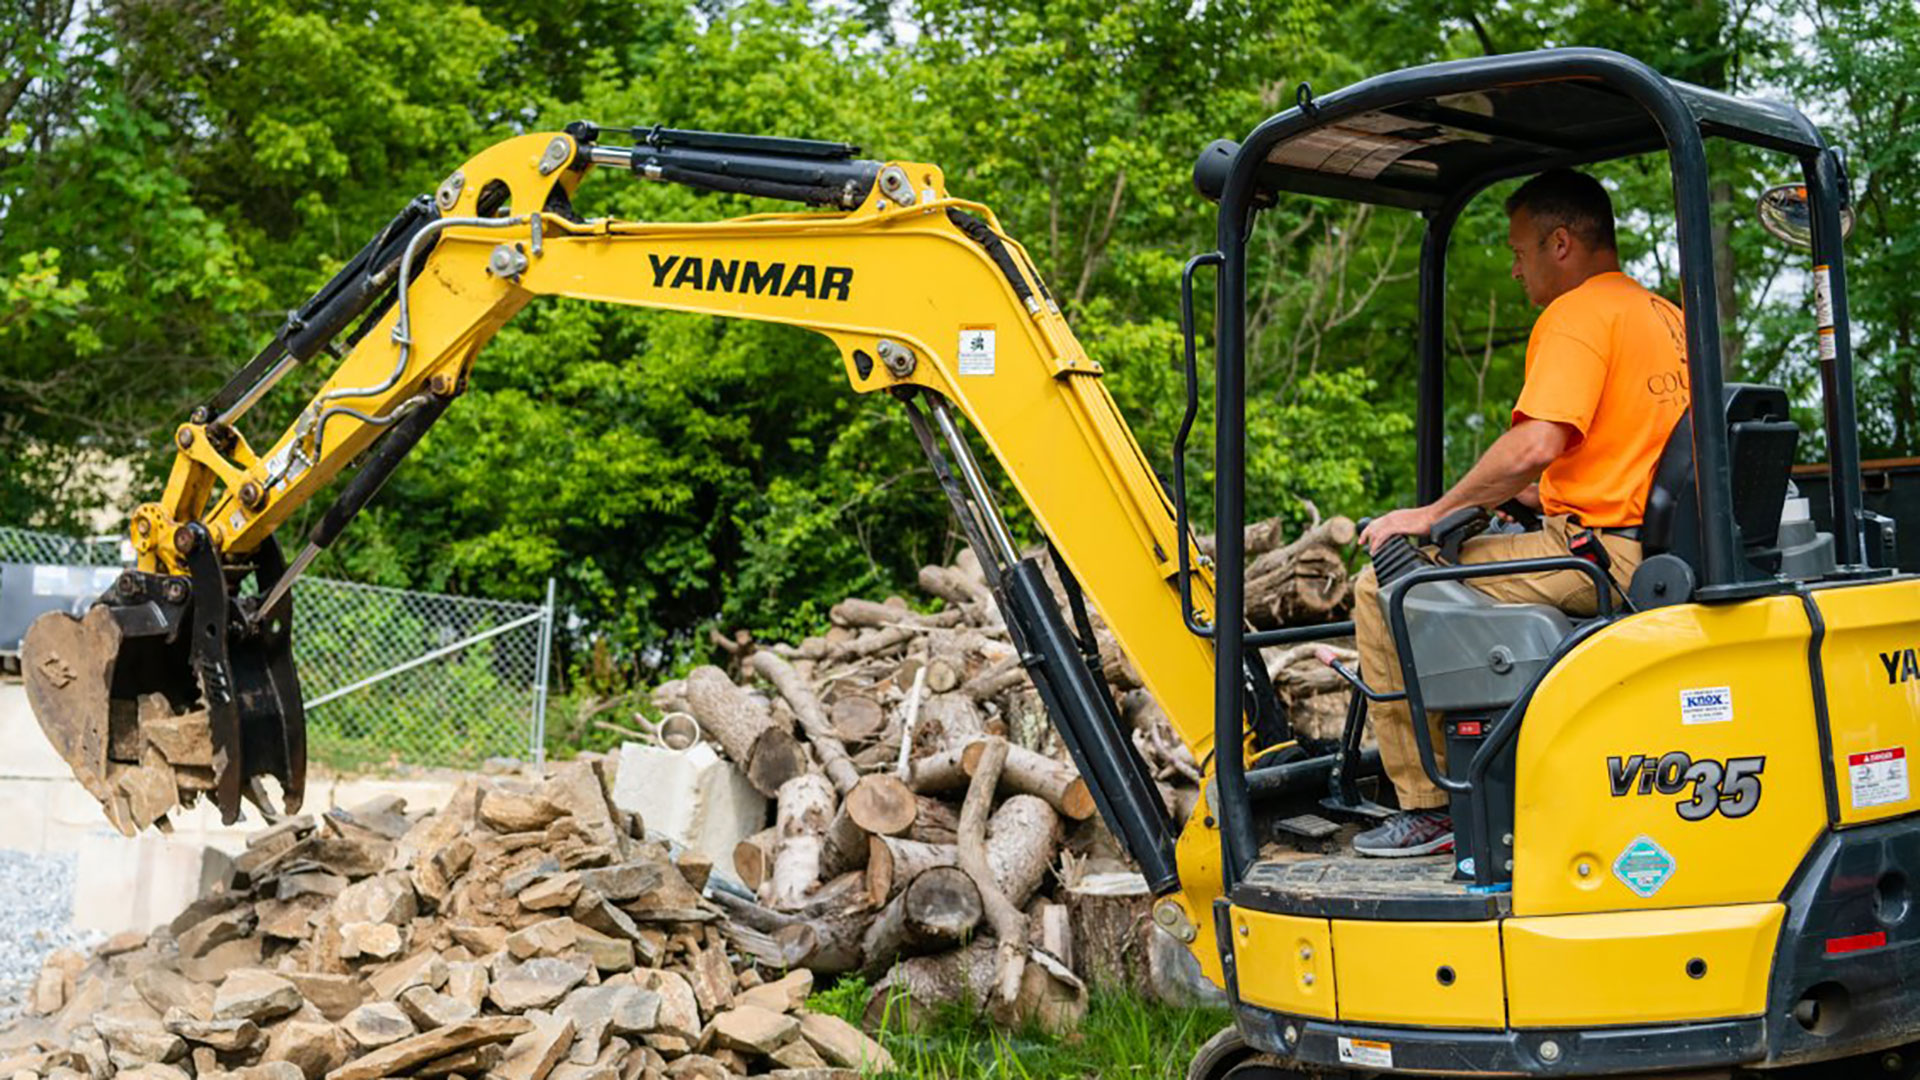 Our landscaper operating an excavator on a property in Downingtown, PA.